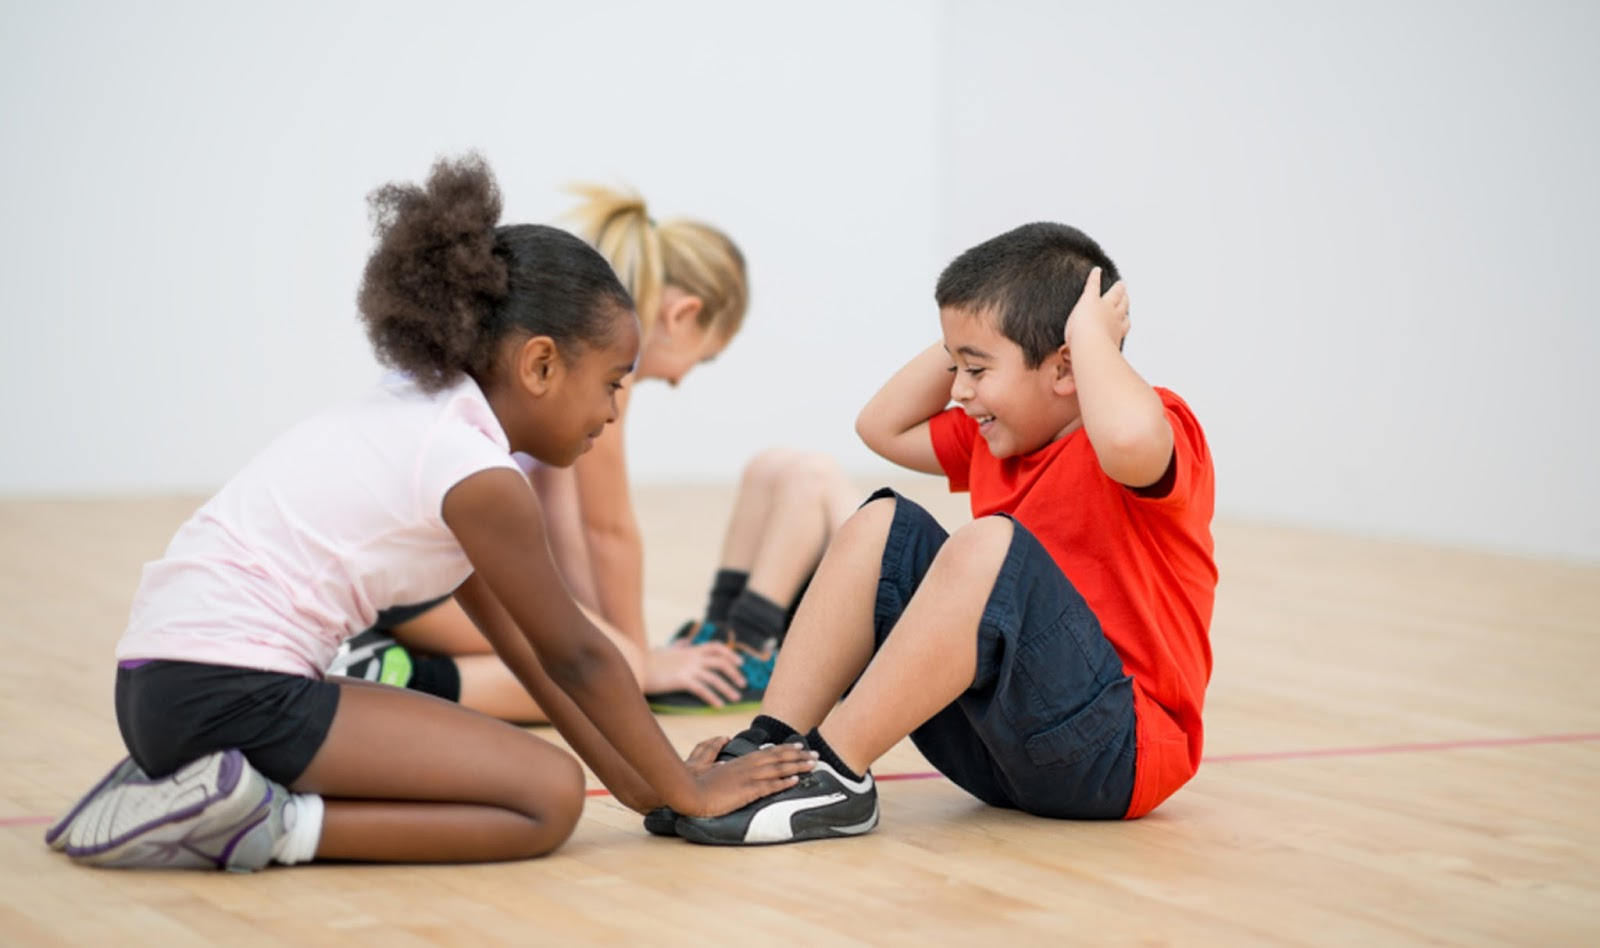 namc montessori Ideas for Non-Competitive Physical Education in the Montessori Environment children stretching in gym class